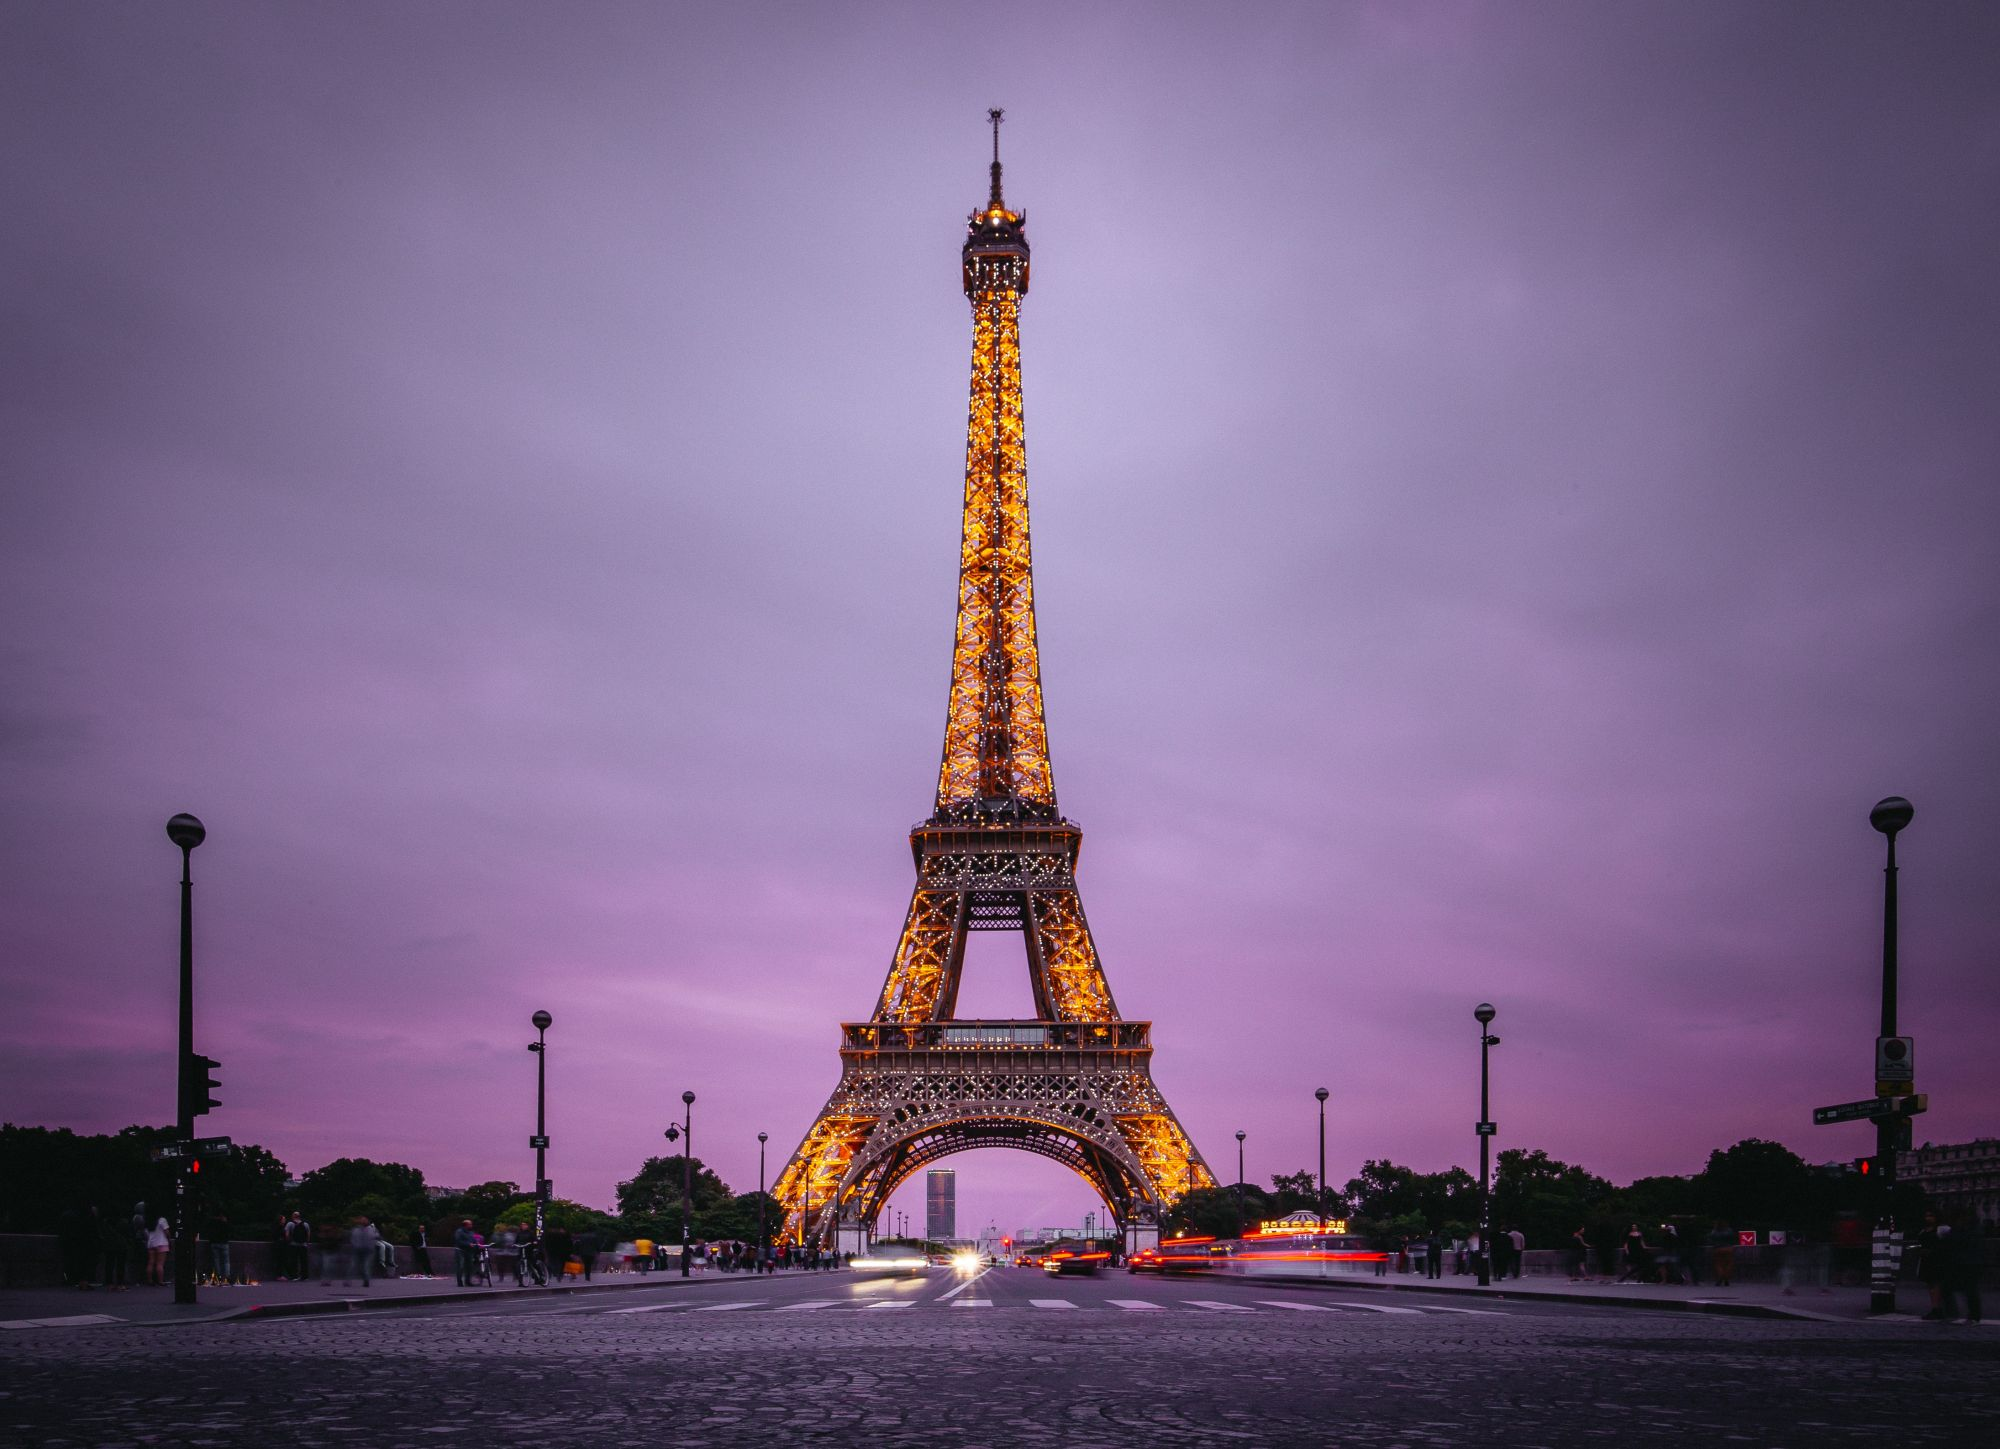 Paris' Eiffel Tower Will Soon Be Producing Its Own Wine